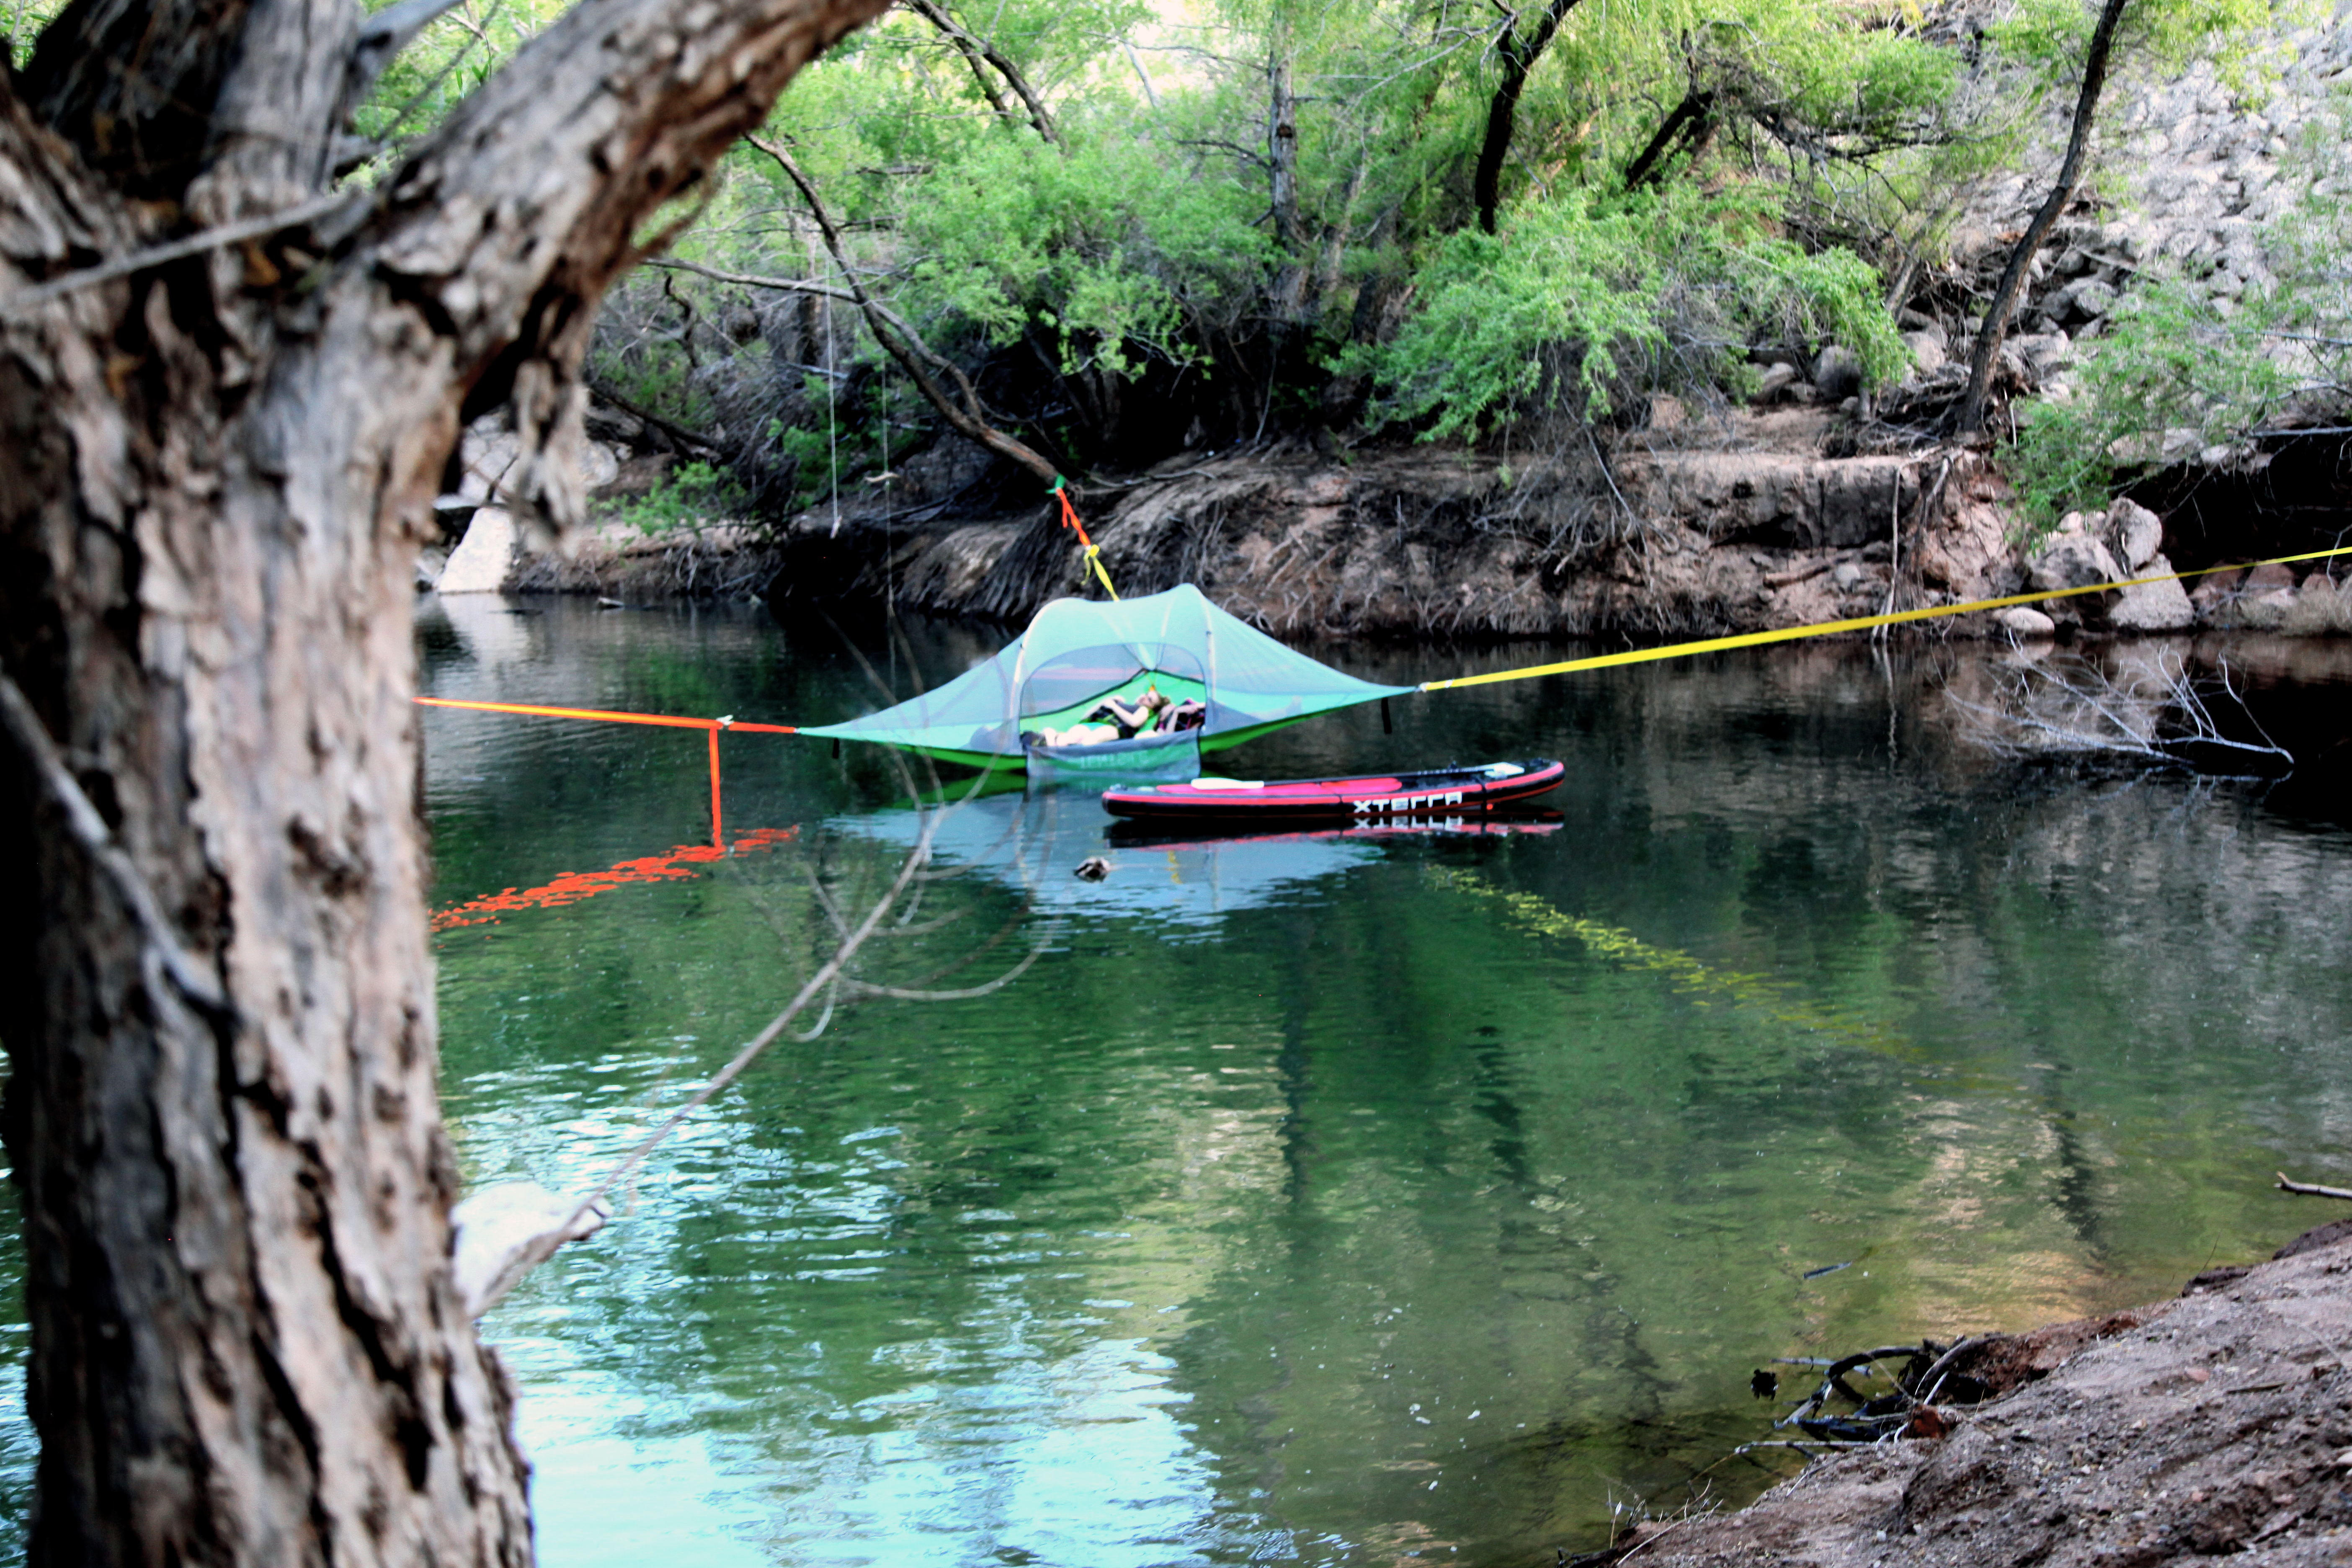 Hammock tent over the water at Quail Creek Reservoir April 29 2015 | Photo & A-List: LED paddleboard hammock tent rentals; giveaway u2013 Cedar ...